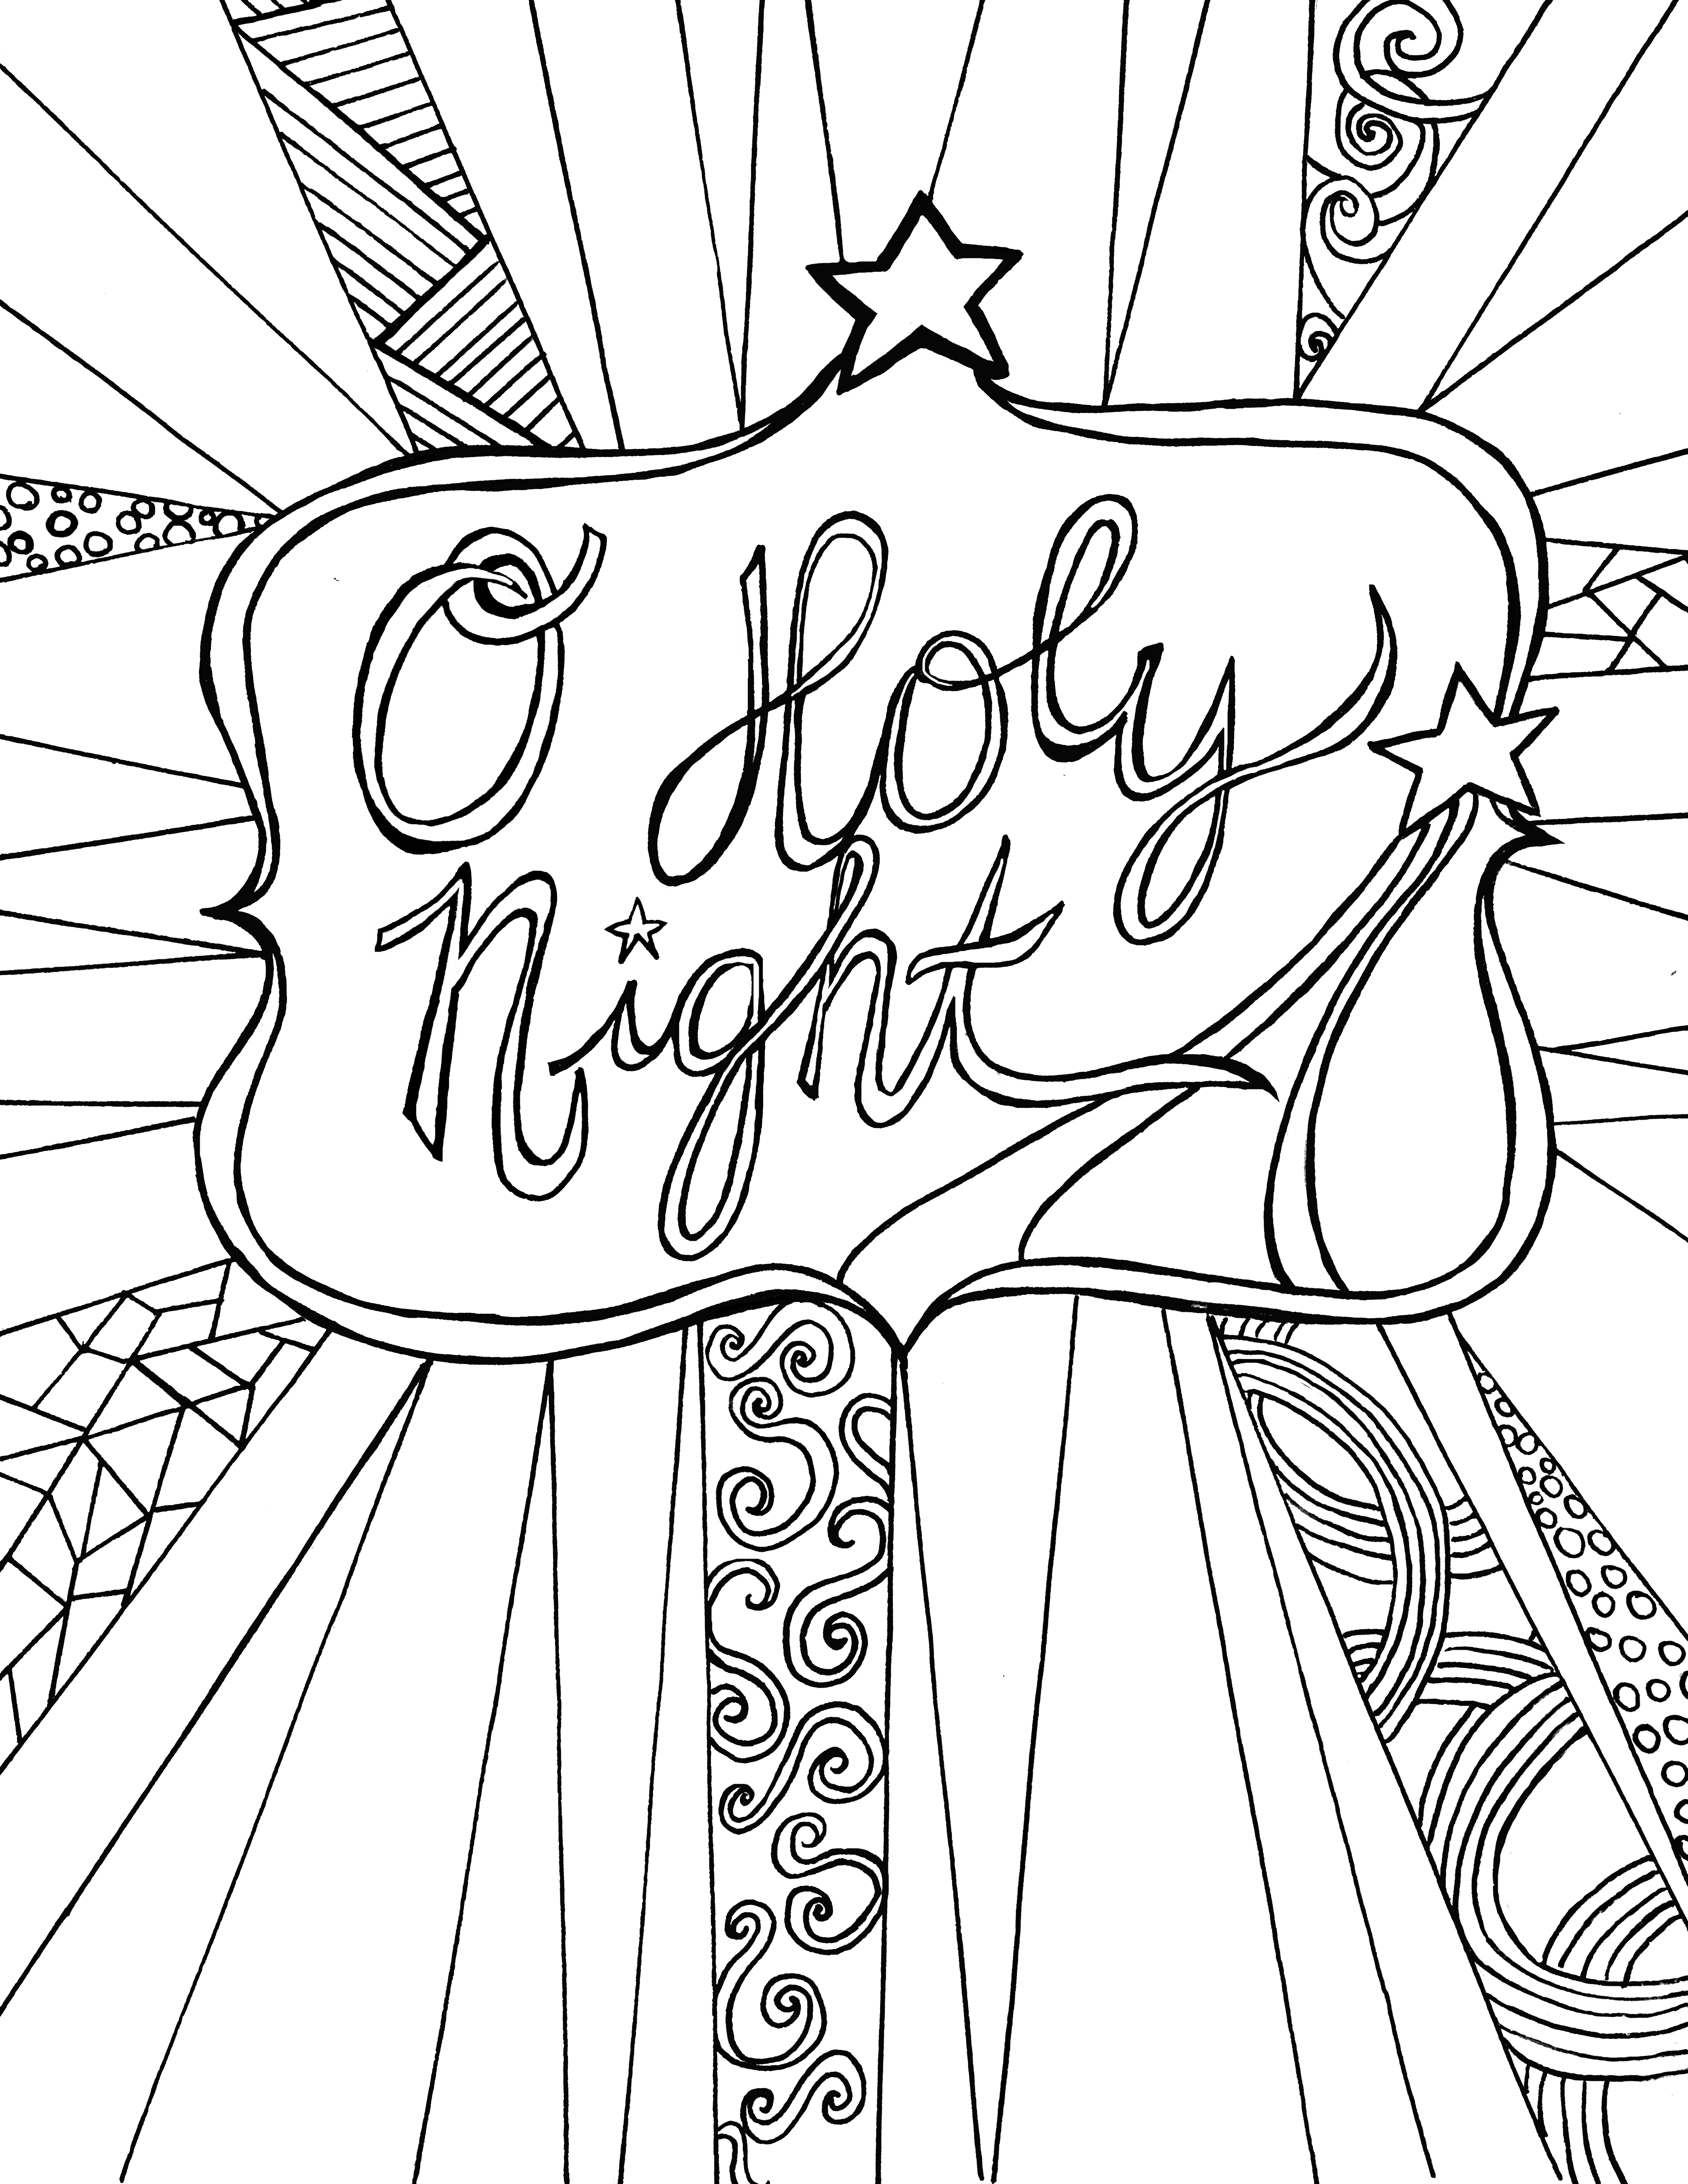 Free adult printable coloring page - O Holy Night, the ...